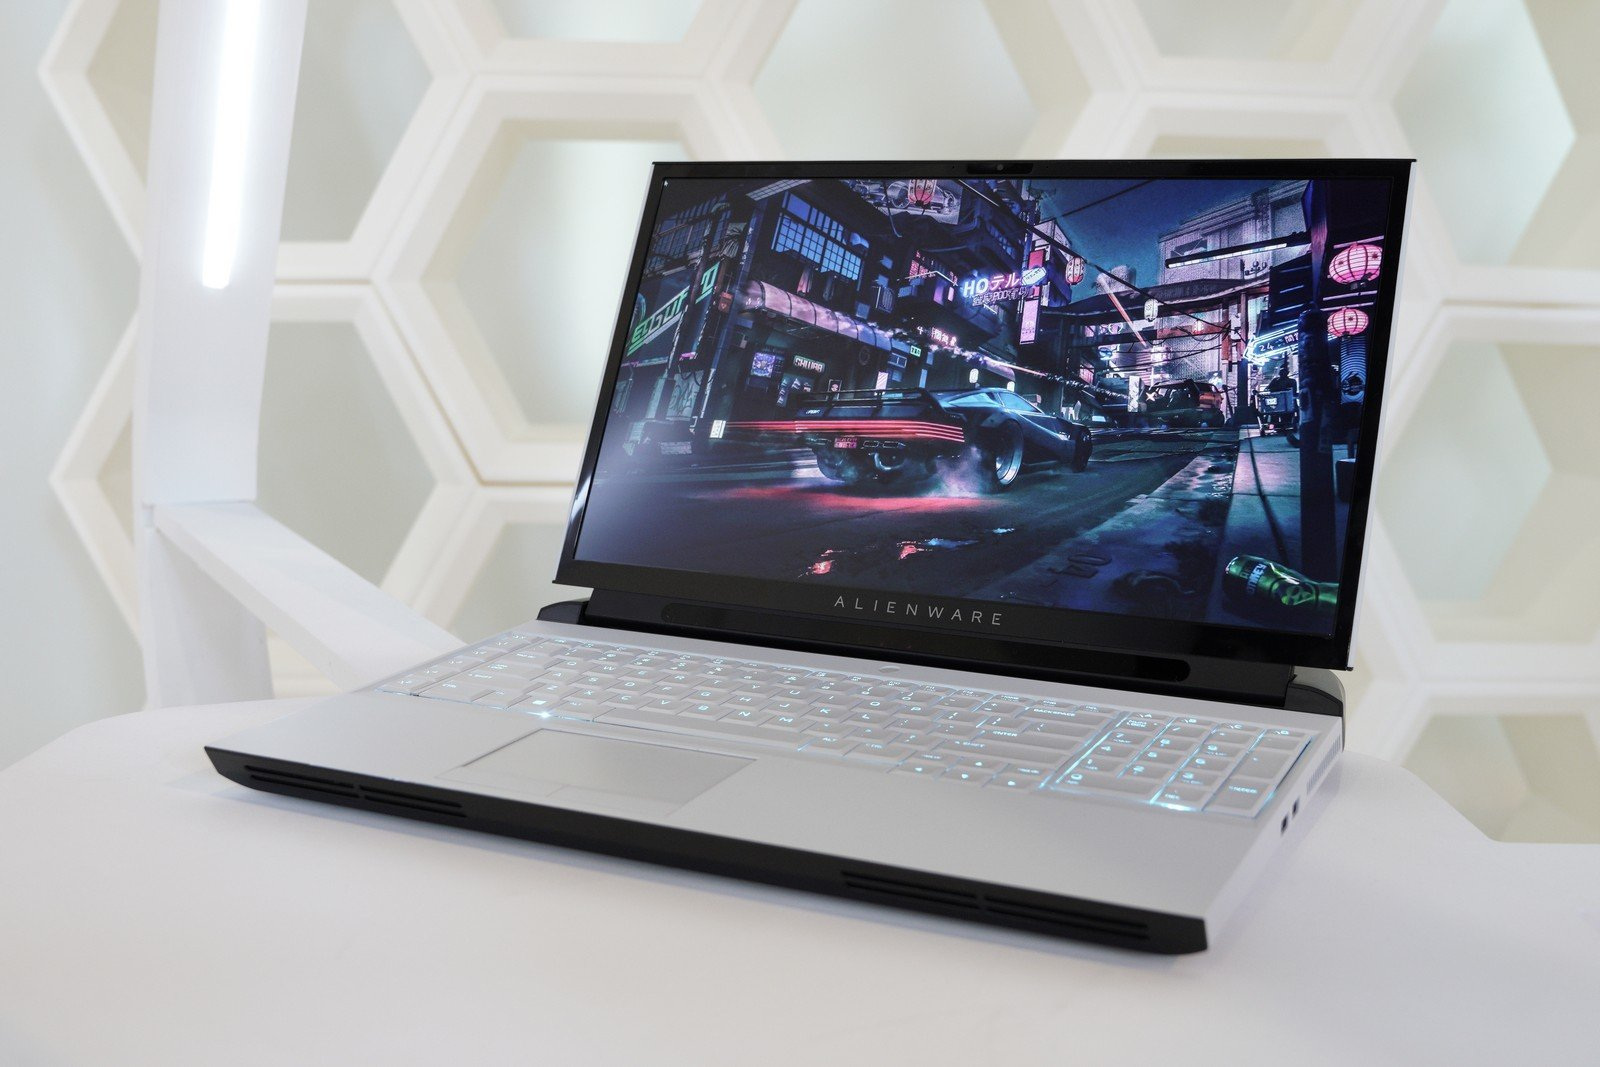 Alienware's new laptop sacrifices mobility for upgradeability